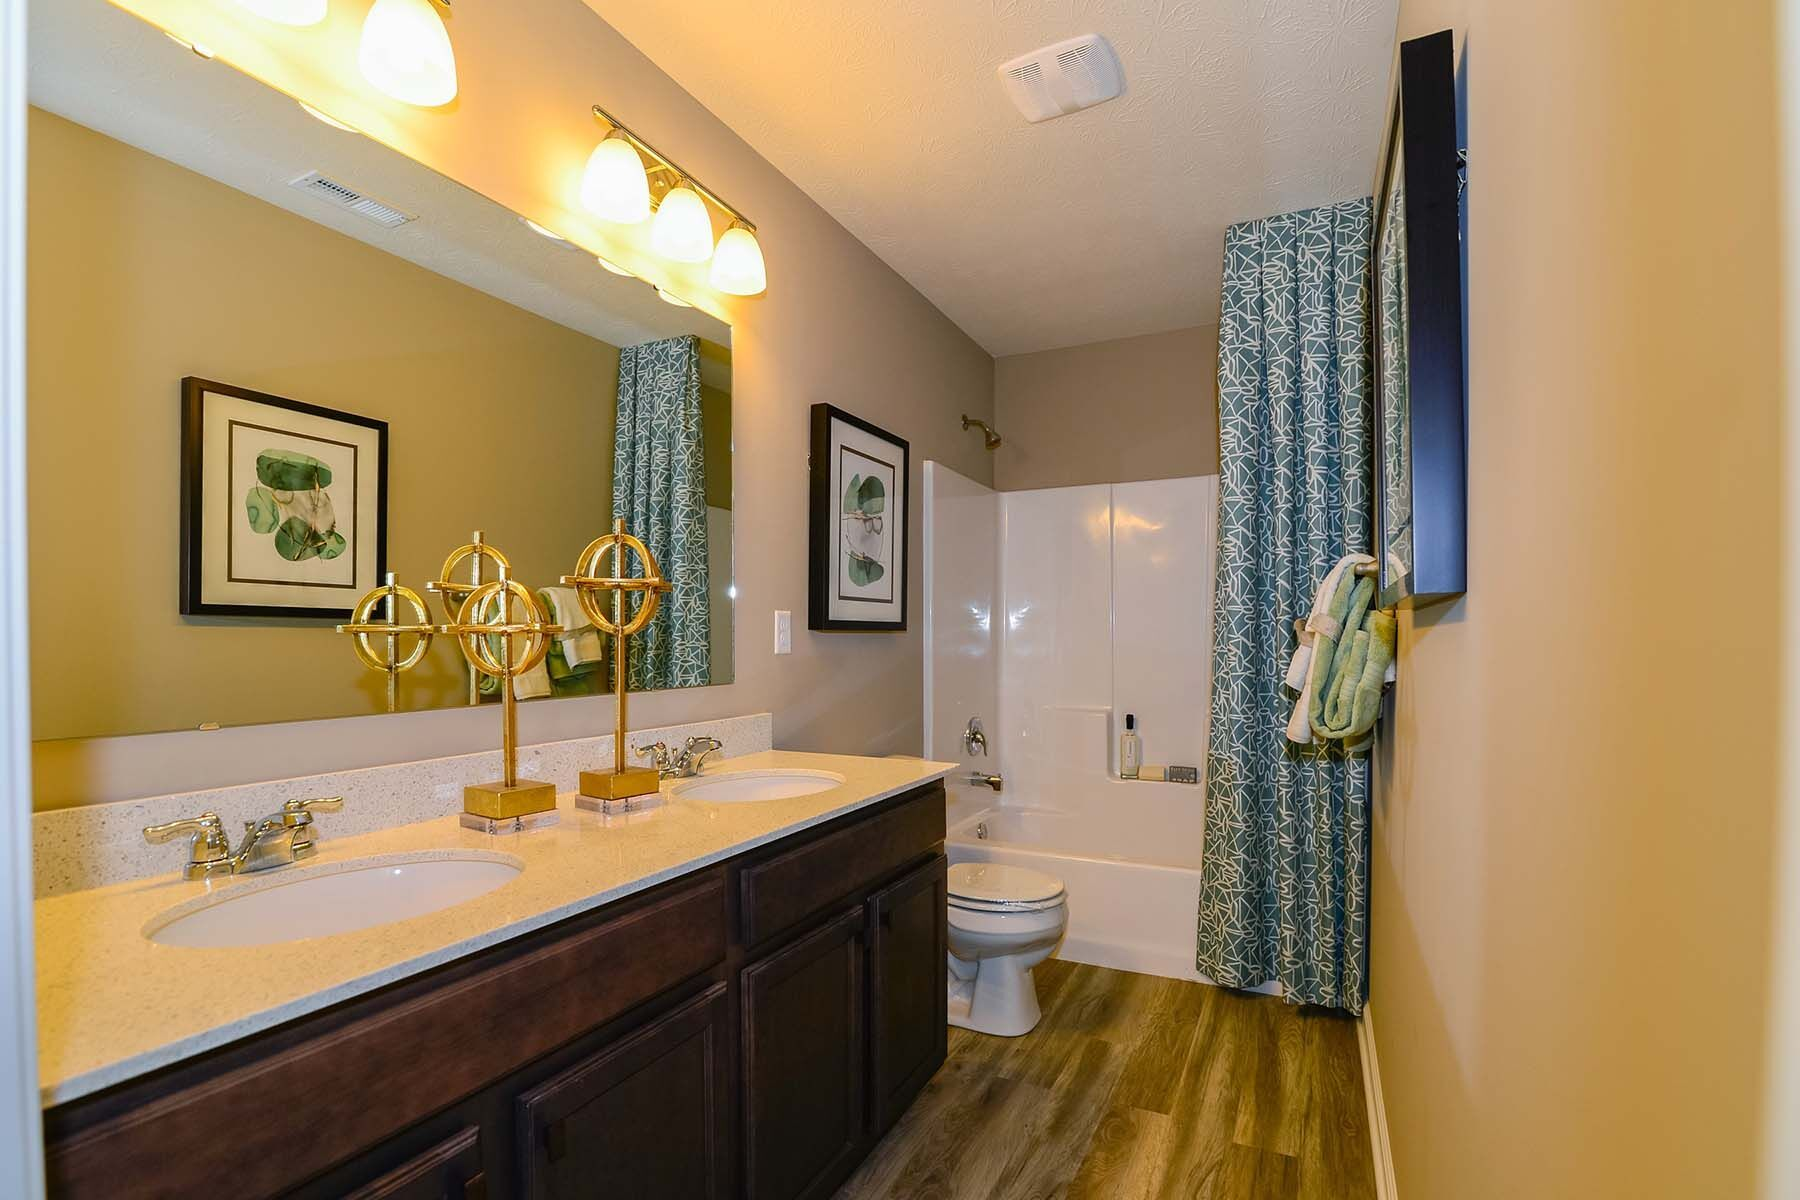 Bathroom featured in the Chauncey Slab By M/I Homes in Indianapolis, IN